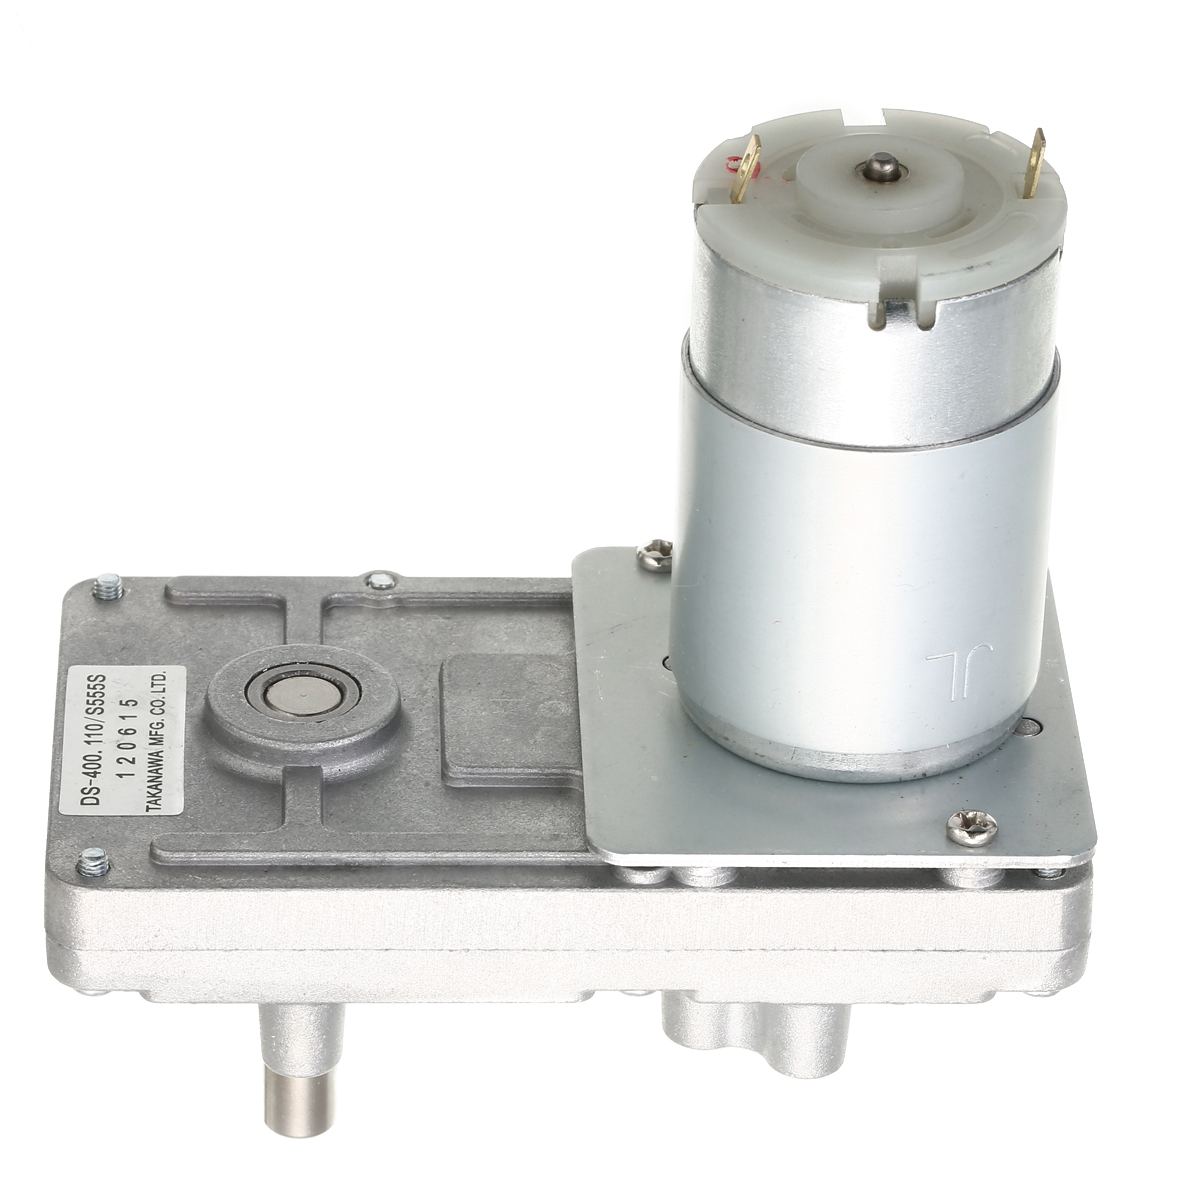 DC Motor <font><b>RS</b></font>-<font><b>555</b></font> Takanawa <font><b>555</b></font> Gear Motor Metal 12V-24V DC Reduction Gear Motor High Torque Low Noise for Electric curtains ovens image